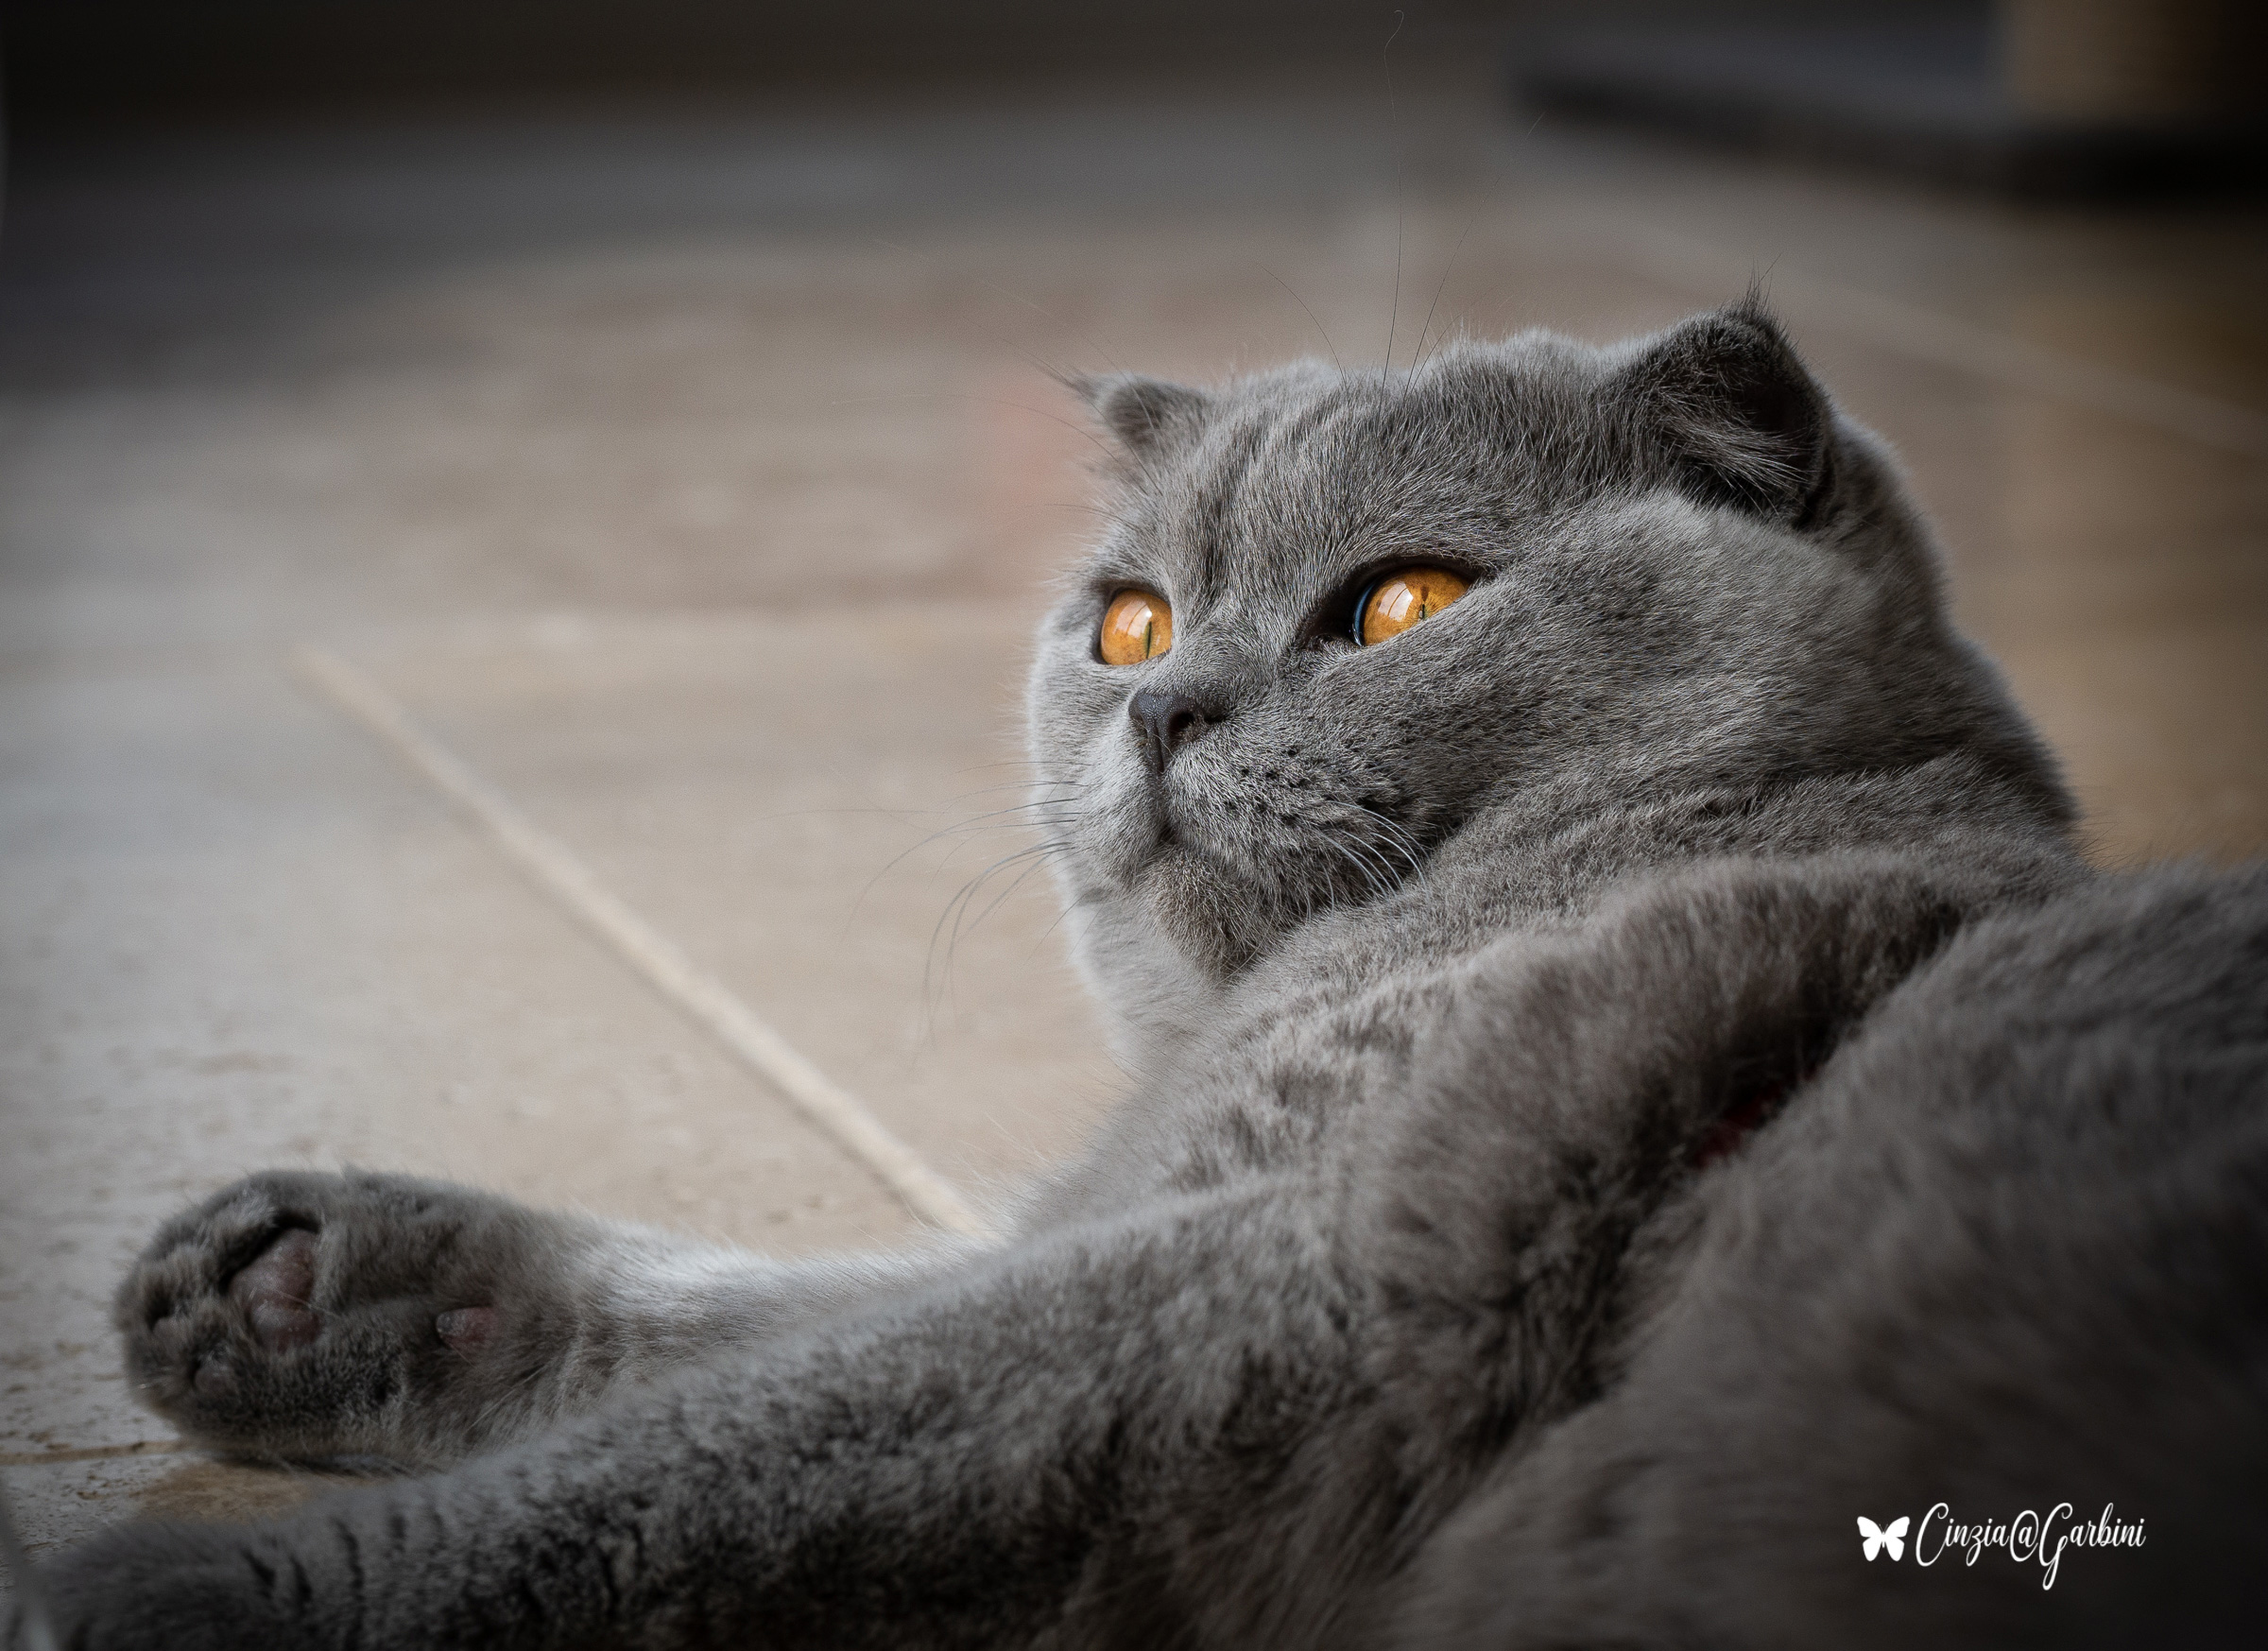 just photo! Feline relaxation...